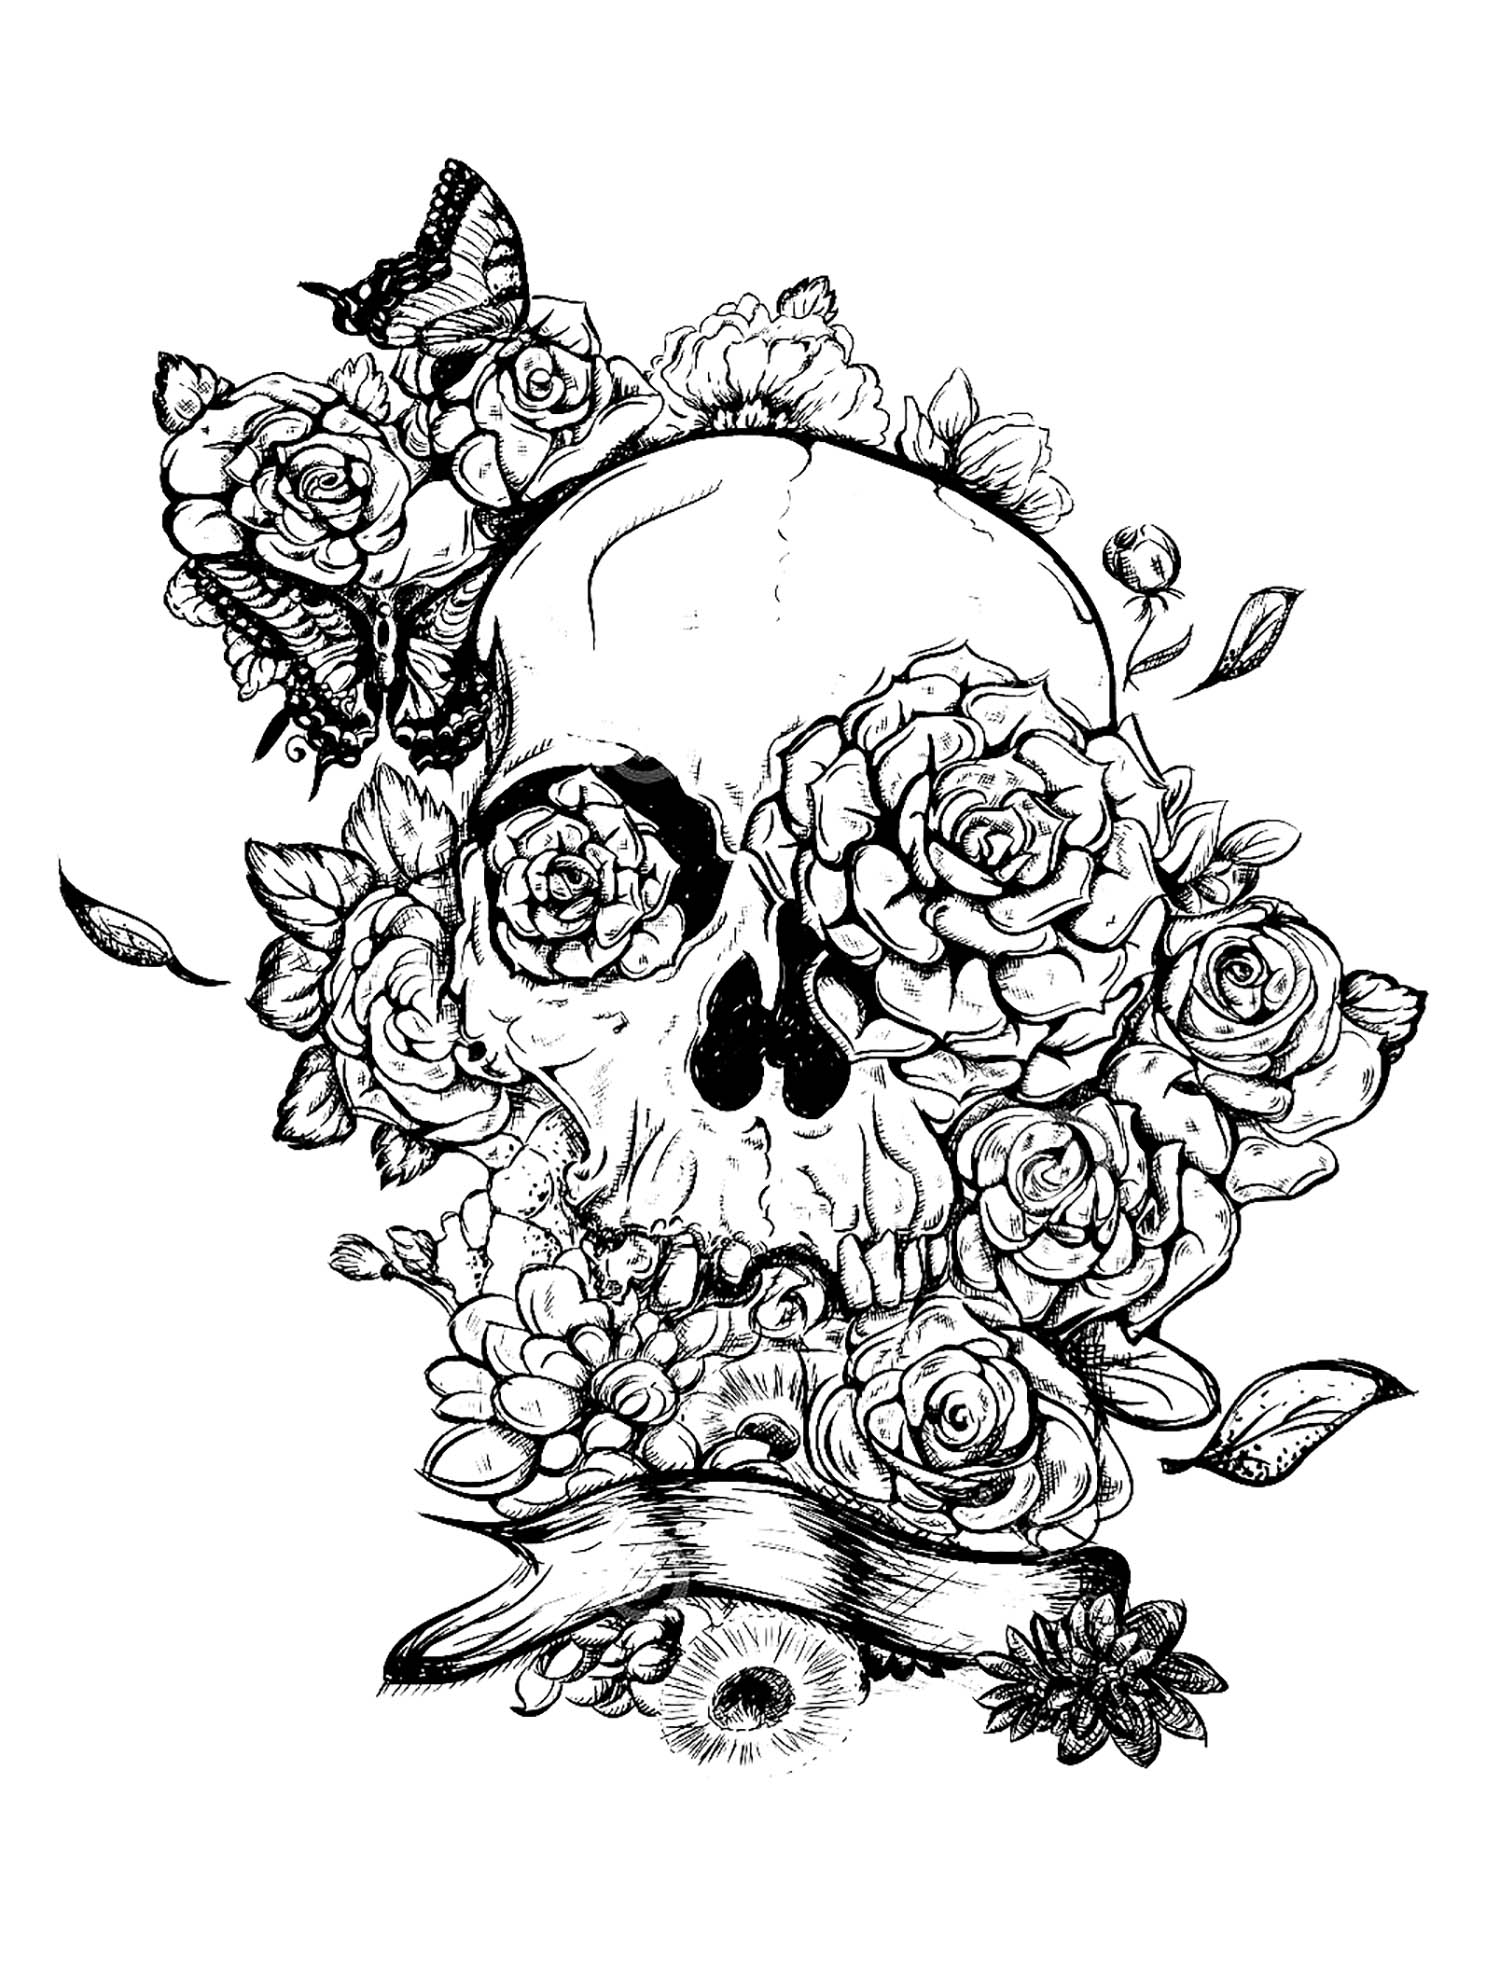 Tattoo Coloring Pages for Adults - Best Coloring Pages For Kids